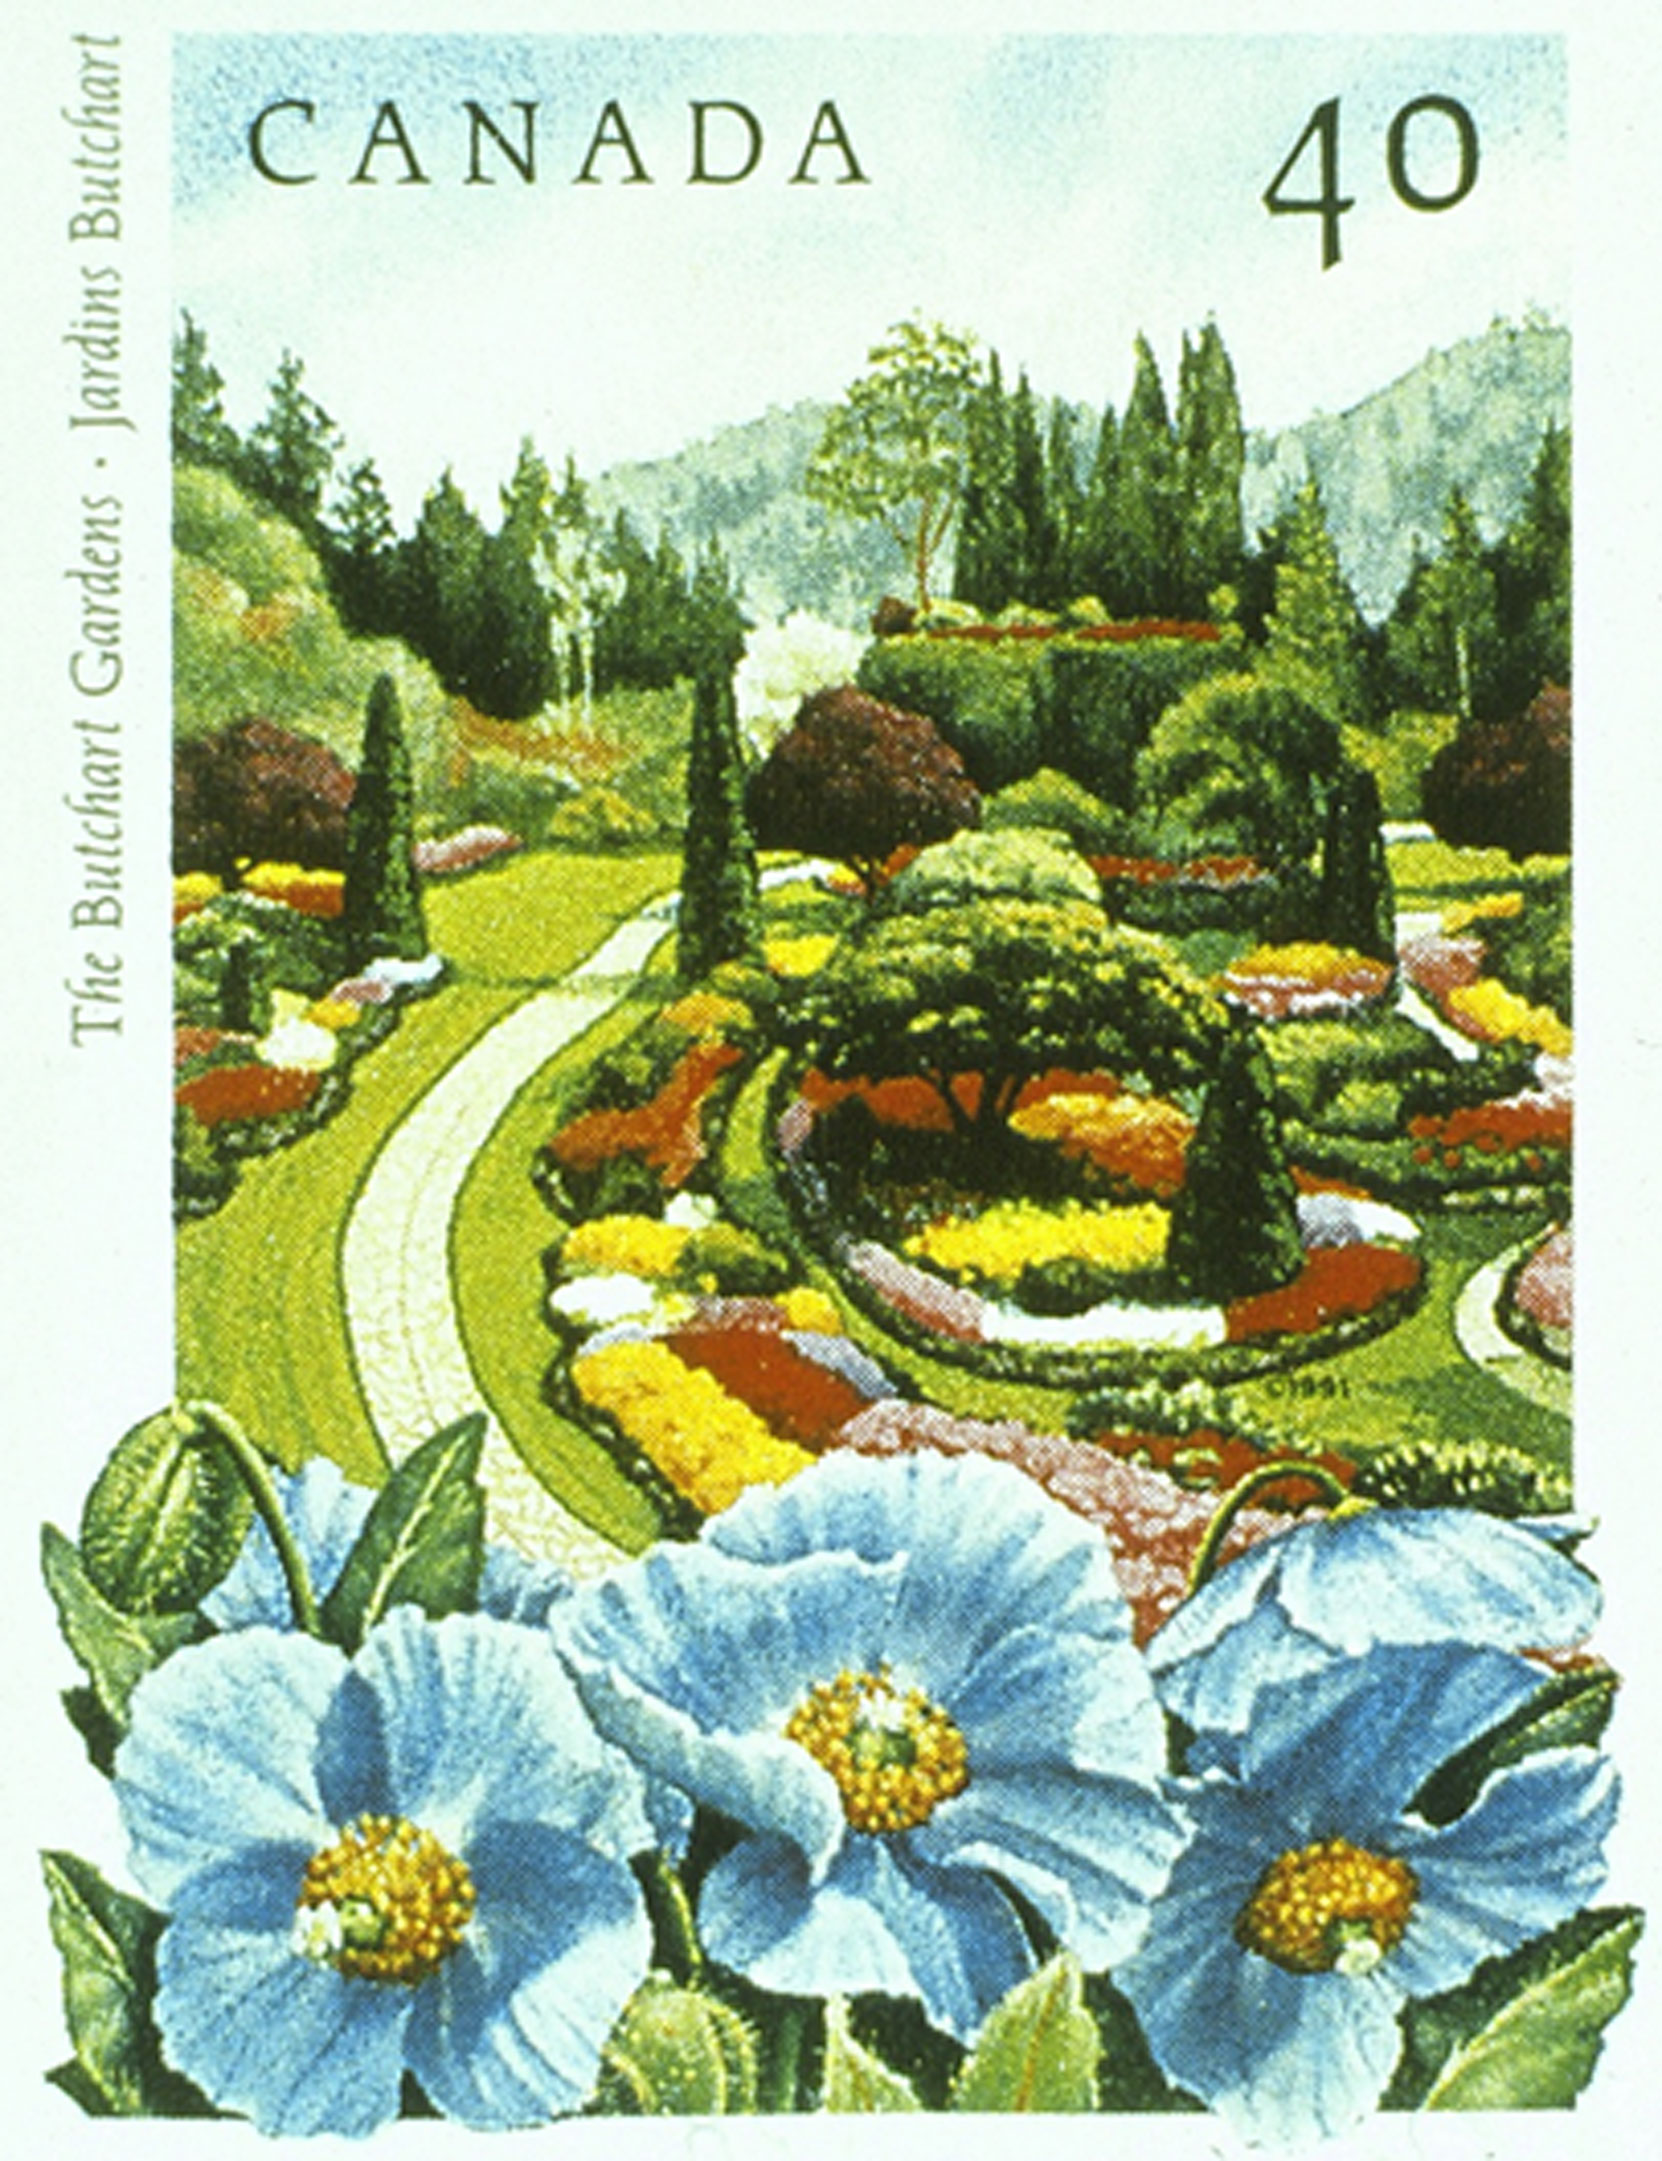 The Butchart gardens 40 cent postage stamp, issued by Canada Post as part of the Public Gardens series, 22 May 1991. (© Canada Post Corporation, 1991. Reproduced with Permission)